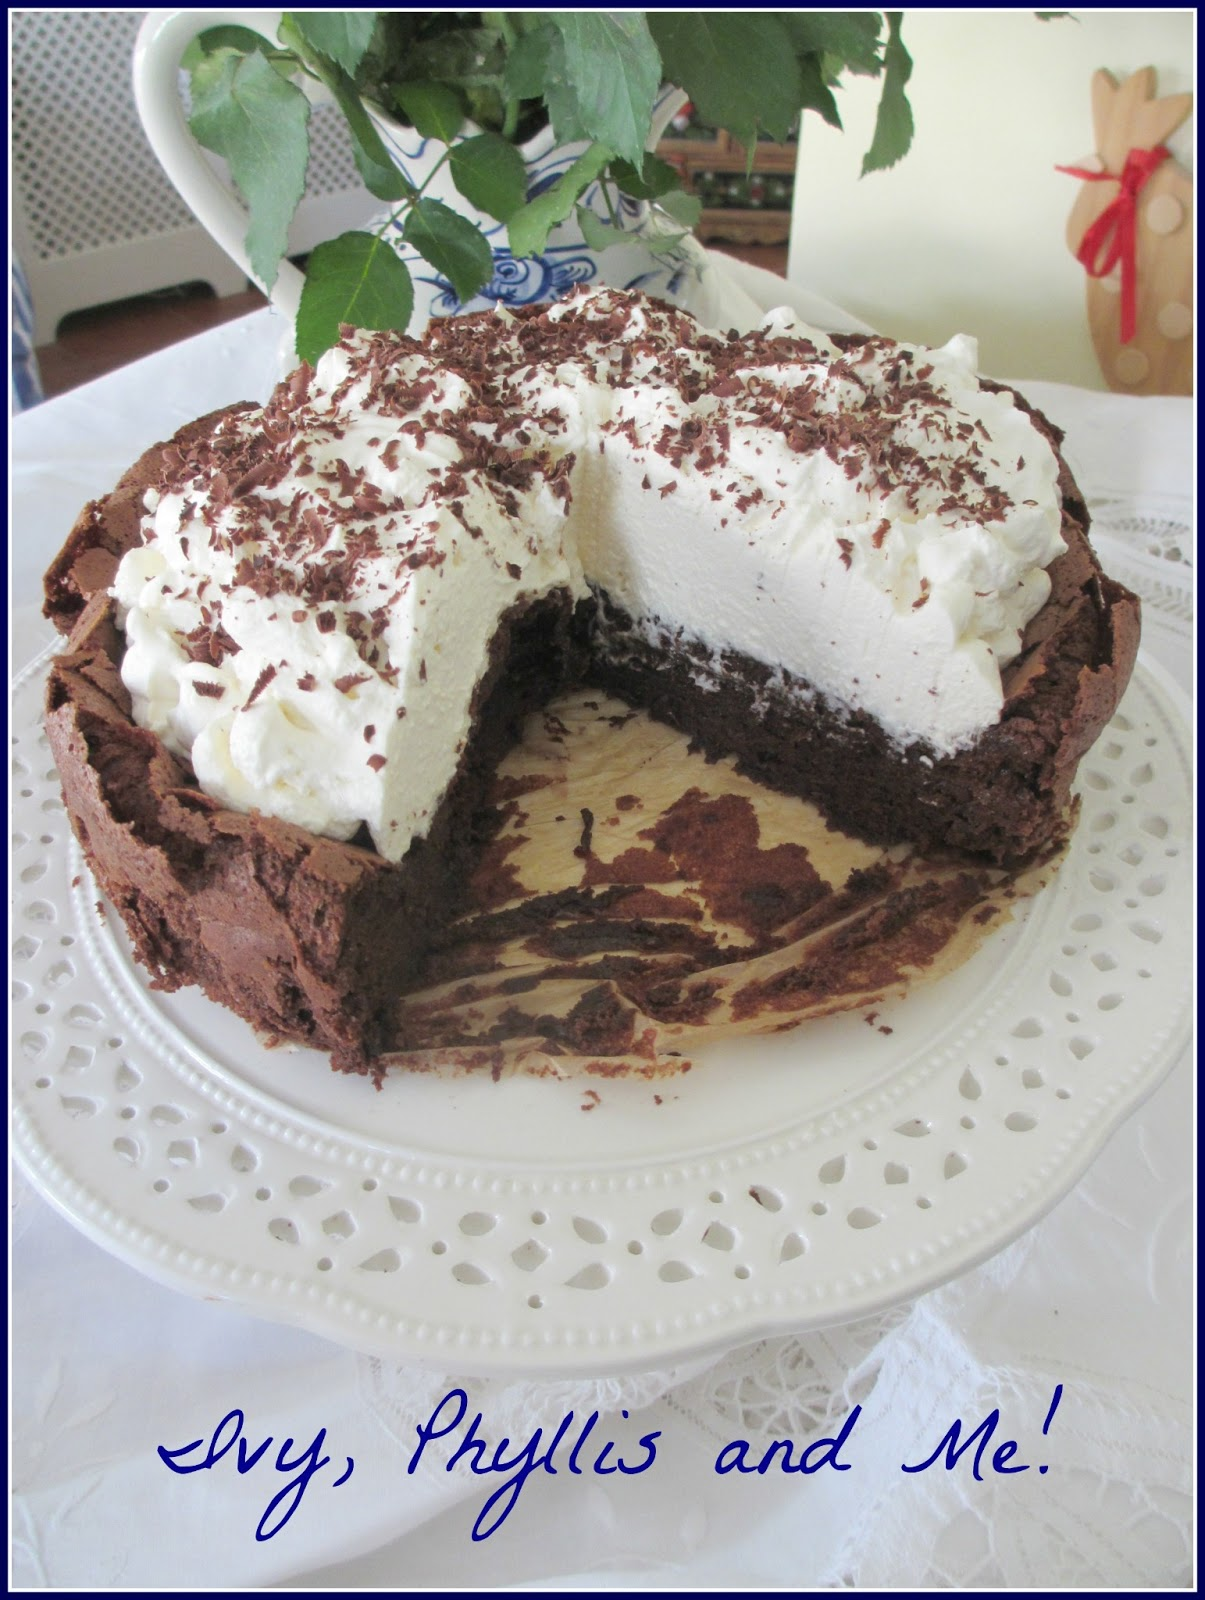 Ivy, Phyllis and Me!: CHOCOLATE CLOUD CAKE